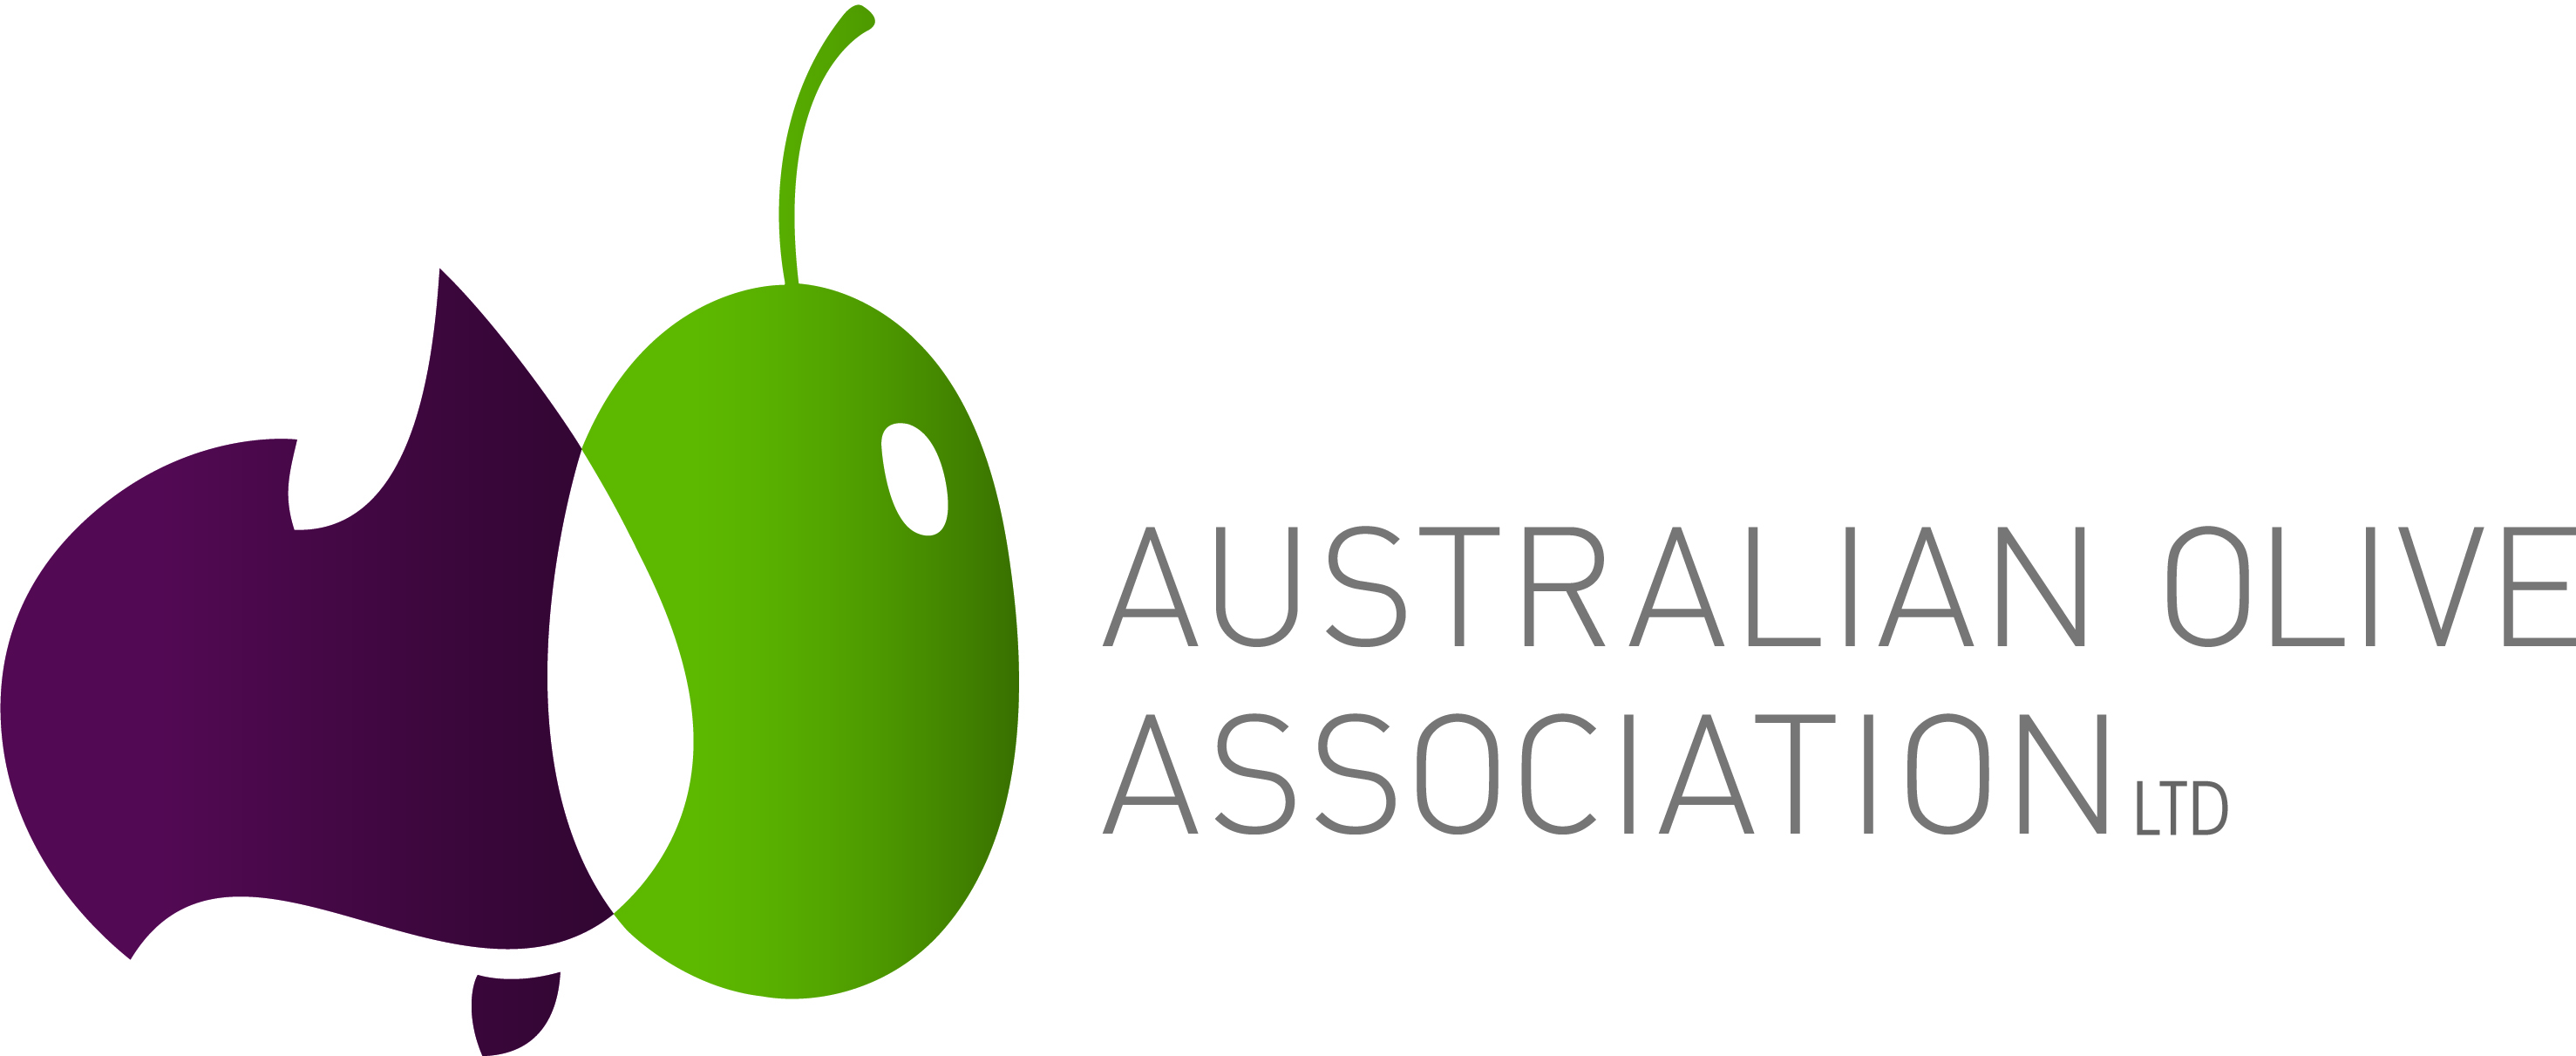 The Australian National Olive Conference & Trade Exhibition